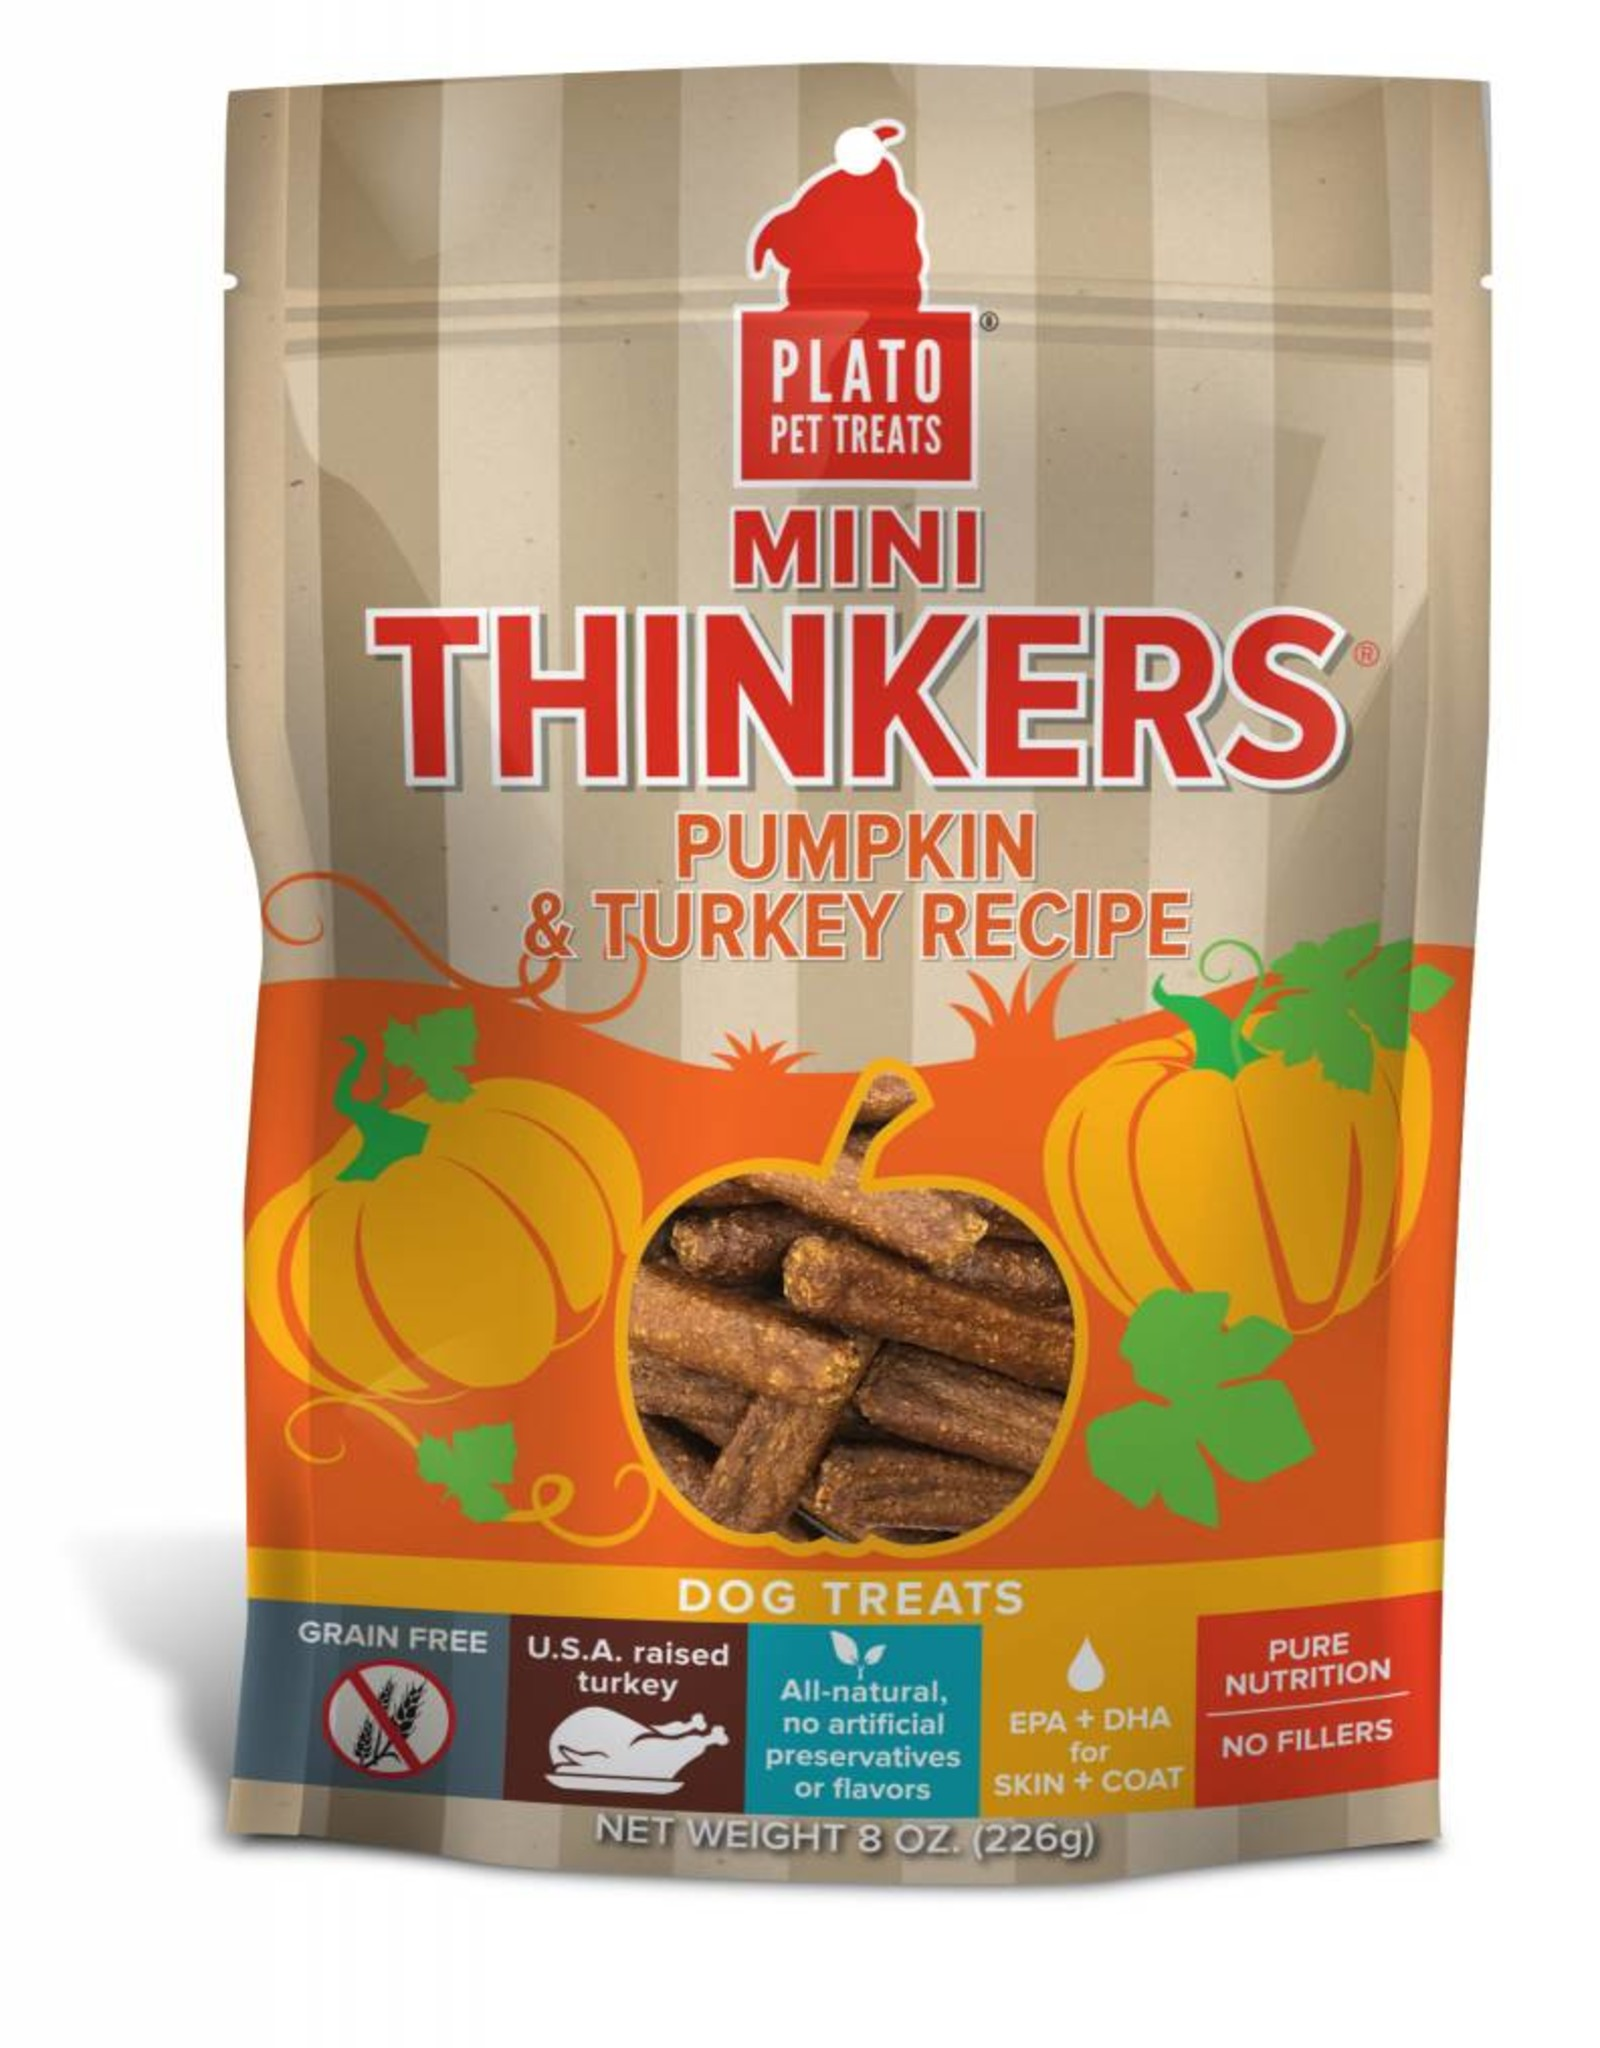 PLATO PET TREATS Plato | Mini Thinkers Pumpkin & Turkey Recipe 8 oz